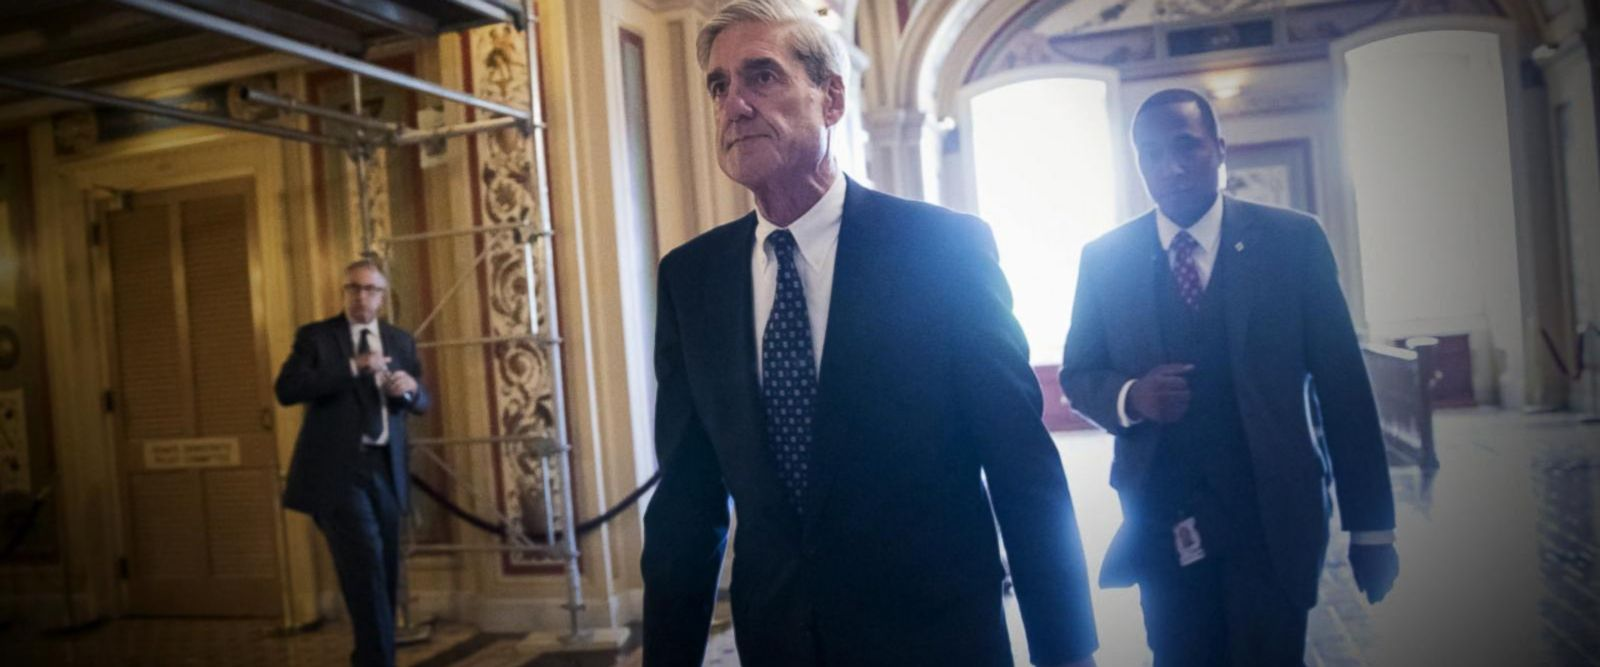 VIDEO: Special counsel sends request for documents to Justice Department